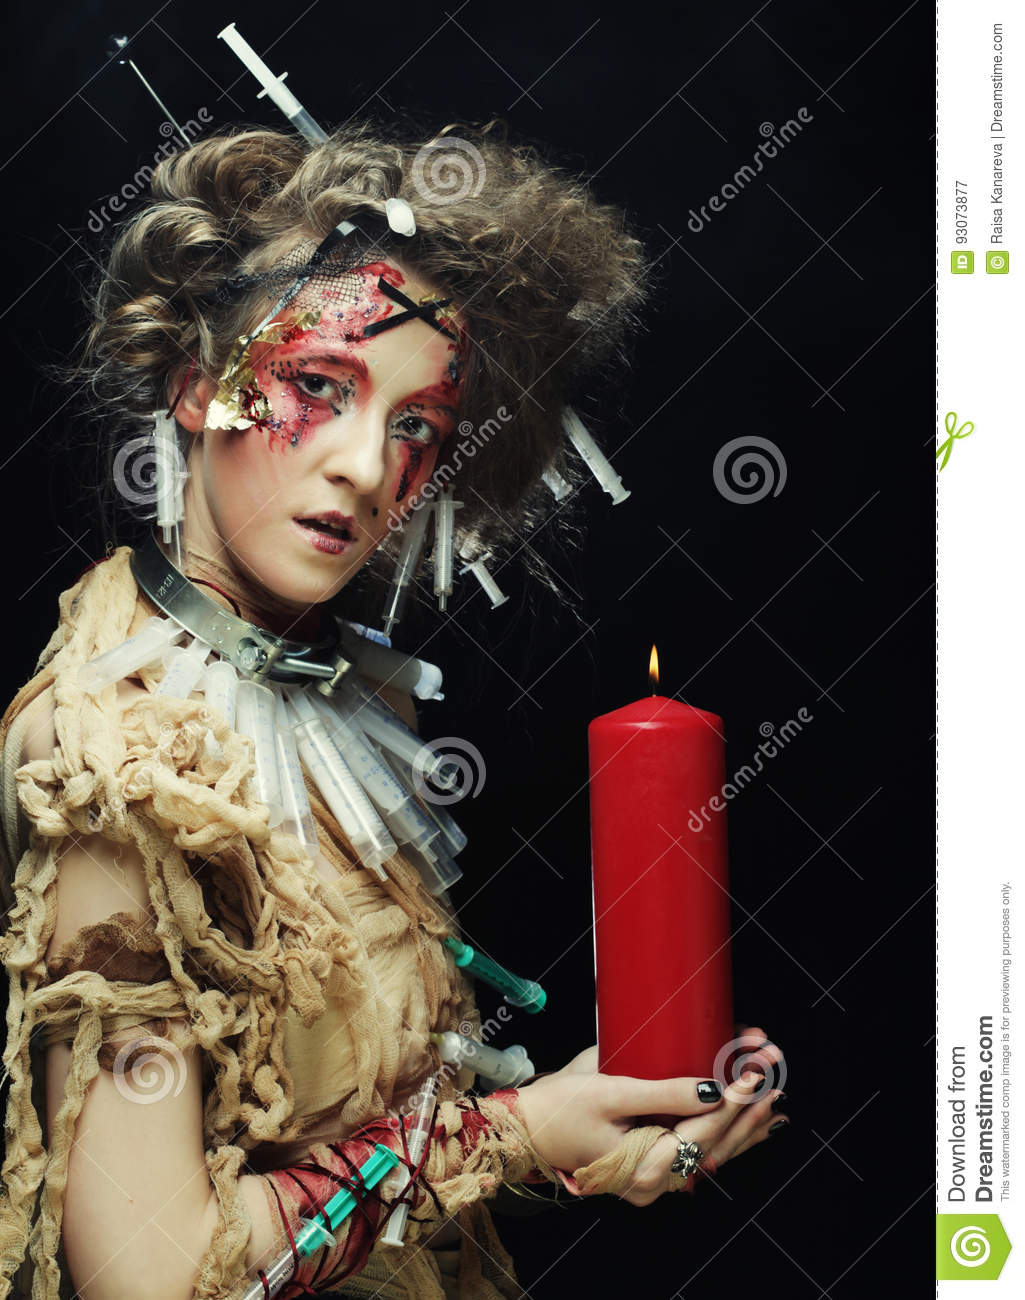 Young woman wearing carnival costume holding a candle.